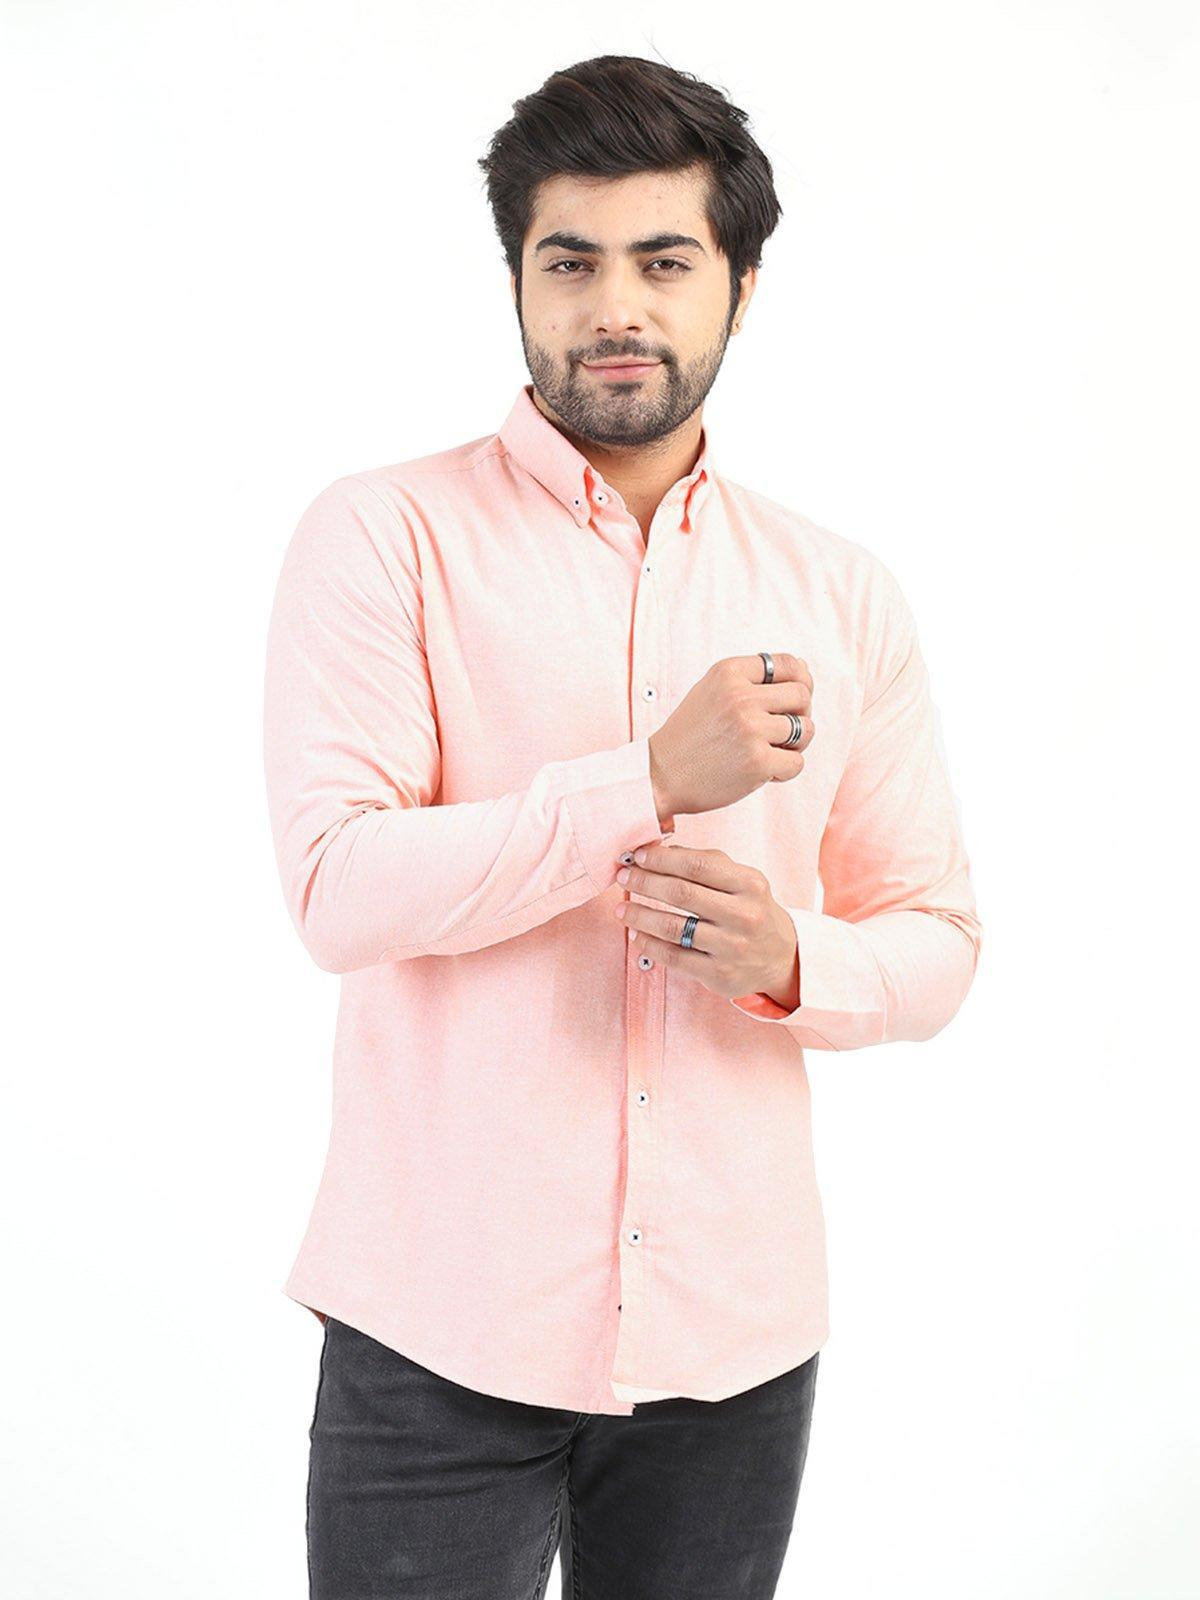 Shahzeb Saeed Cotton Casual Shirts for Men - PEACH CSW-211